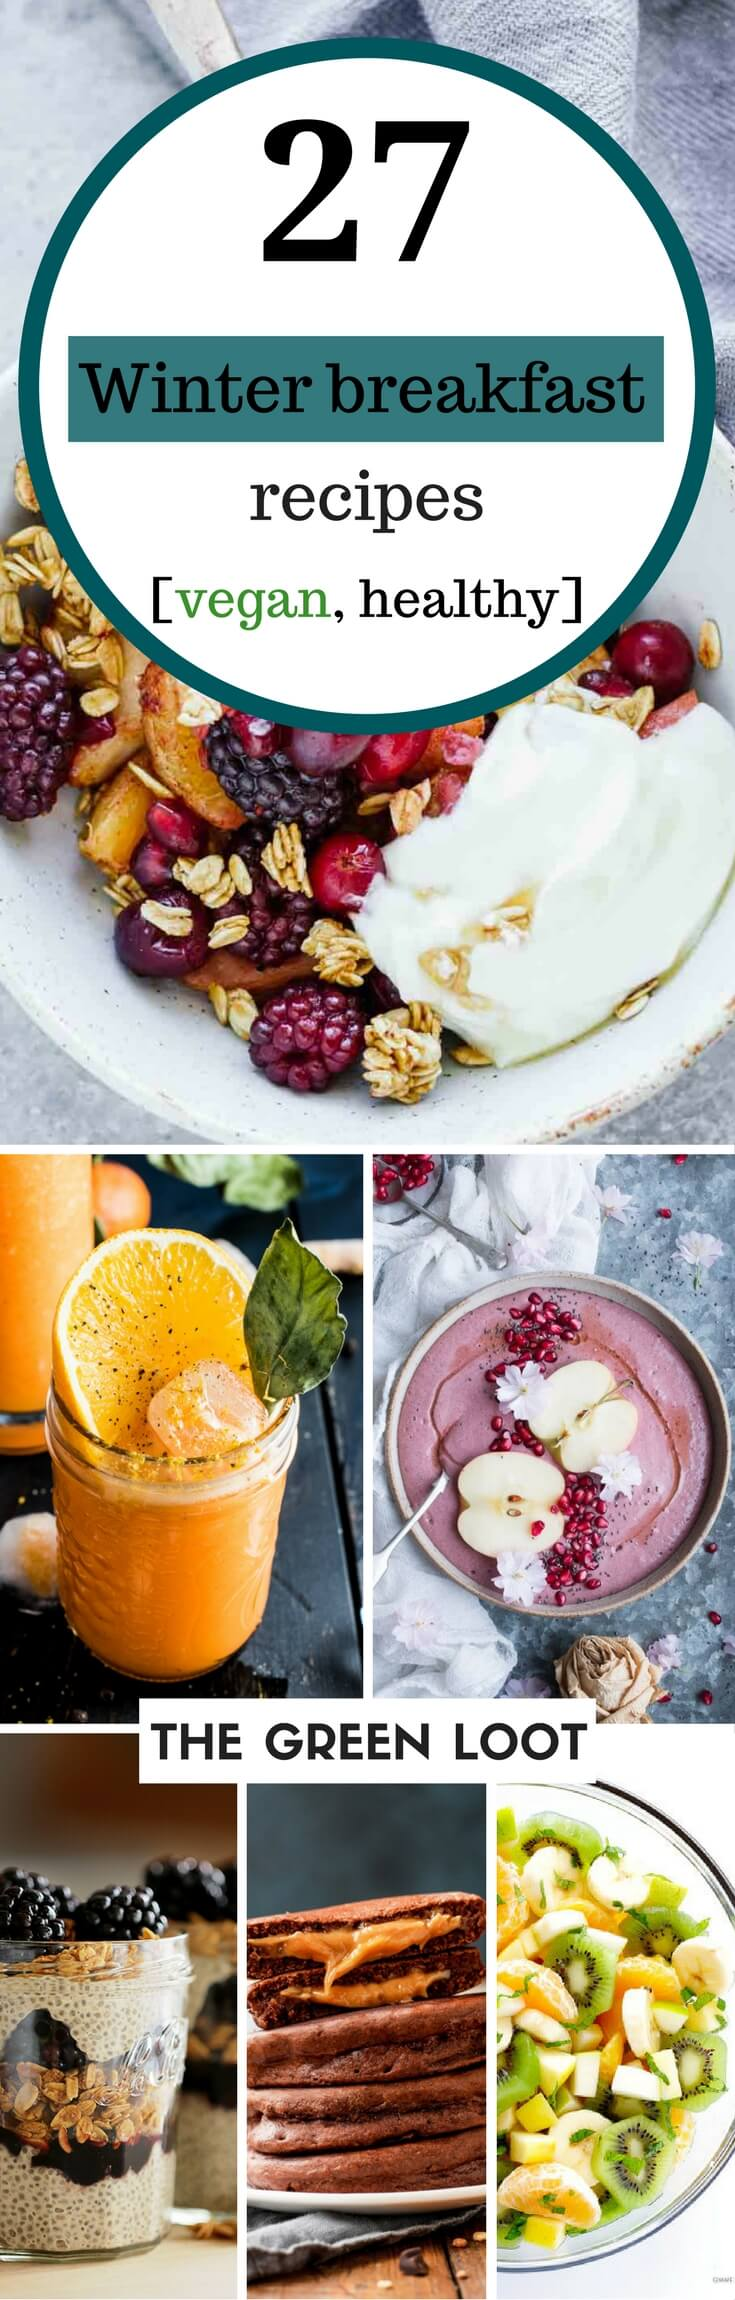 Get inspired with these vegan Winter breakfast recipes that are healthy and warming. Easy, dairy-free ideas to make with fruit smoothie bowls, cinnamon, almond flour or chia seeds to warm you up on the coldest mornings. | The Green Loot #vegan #healthy